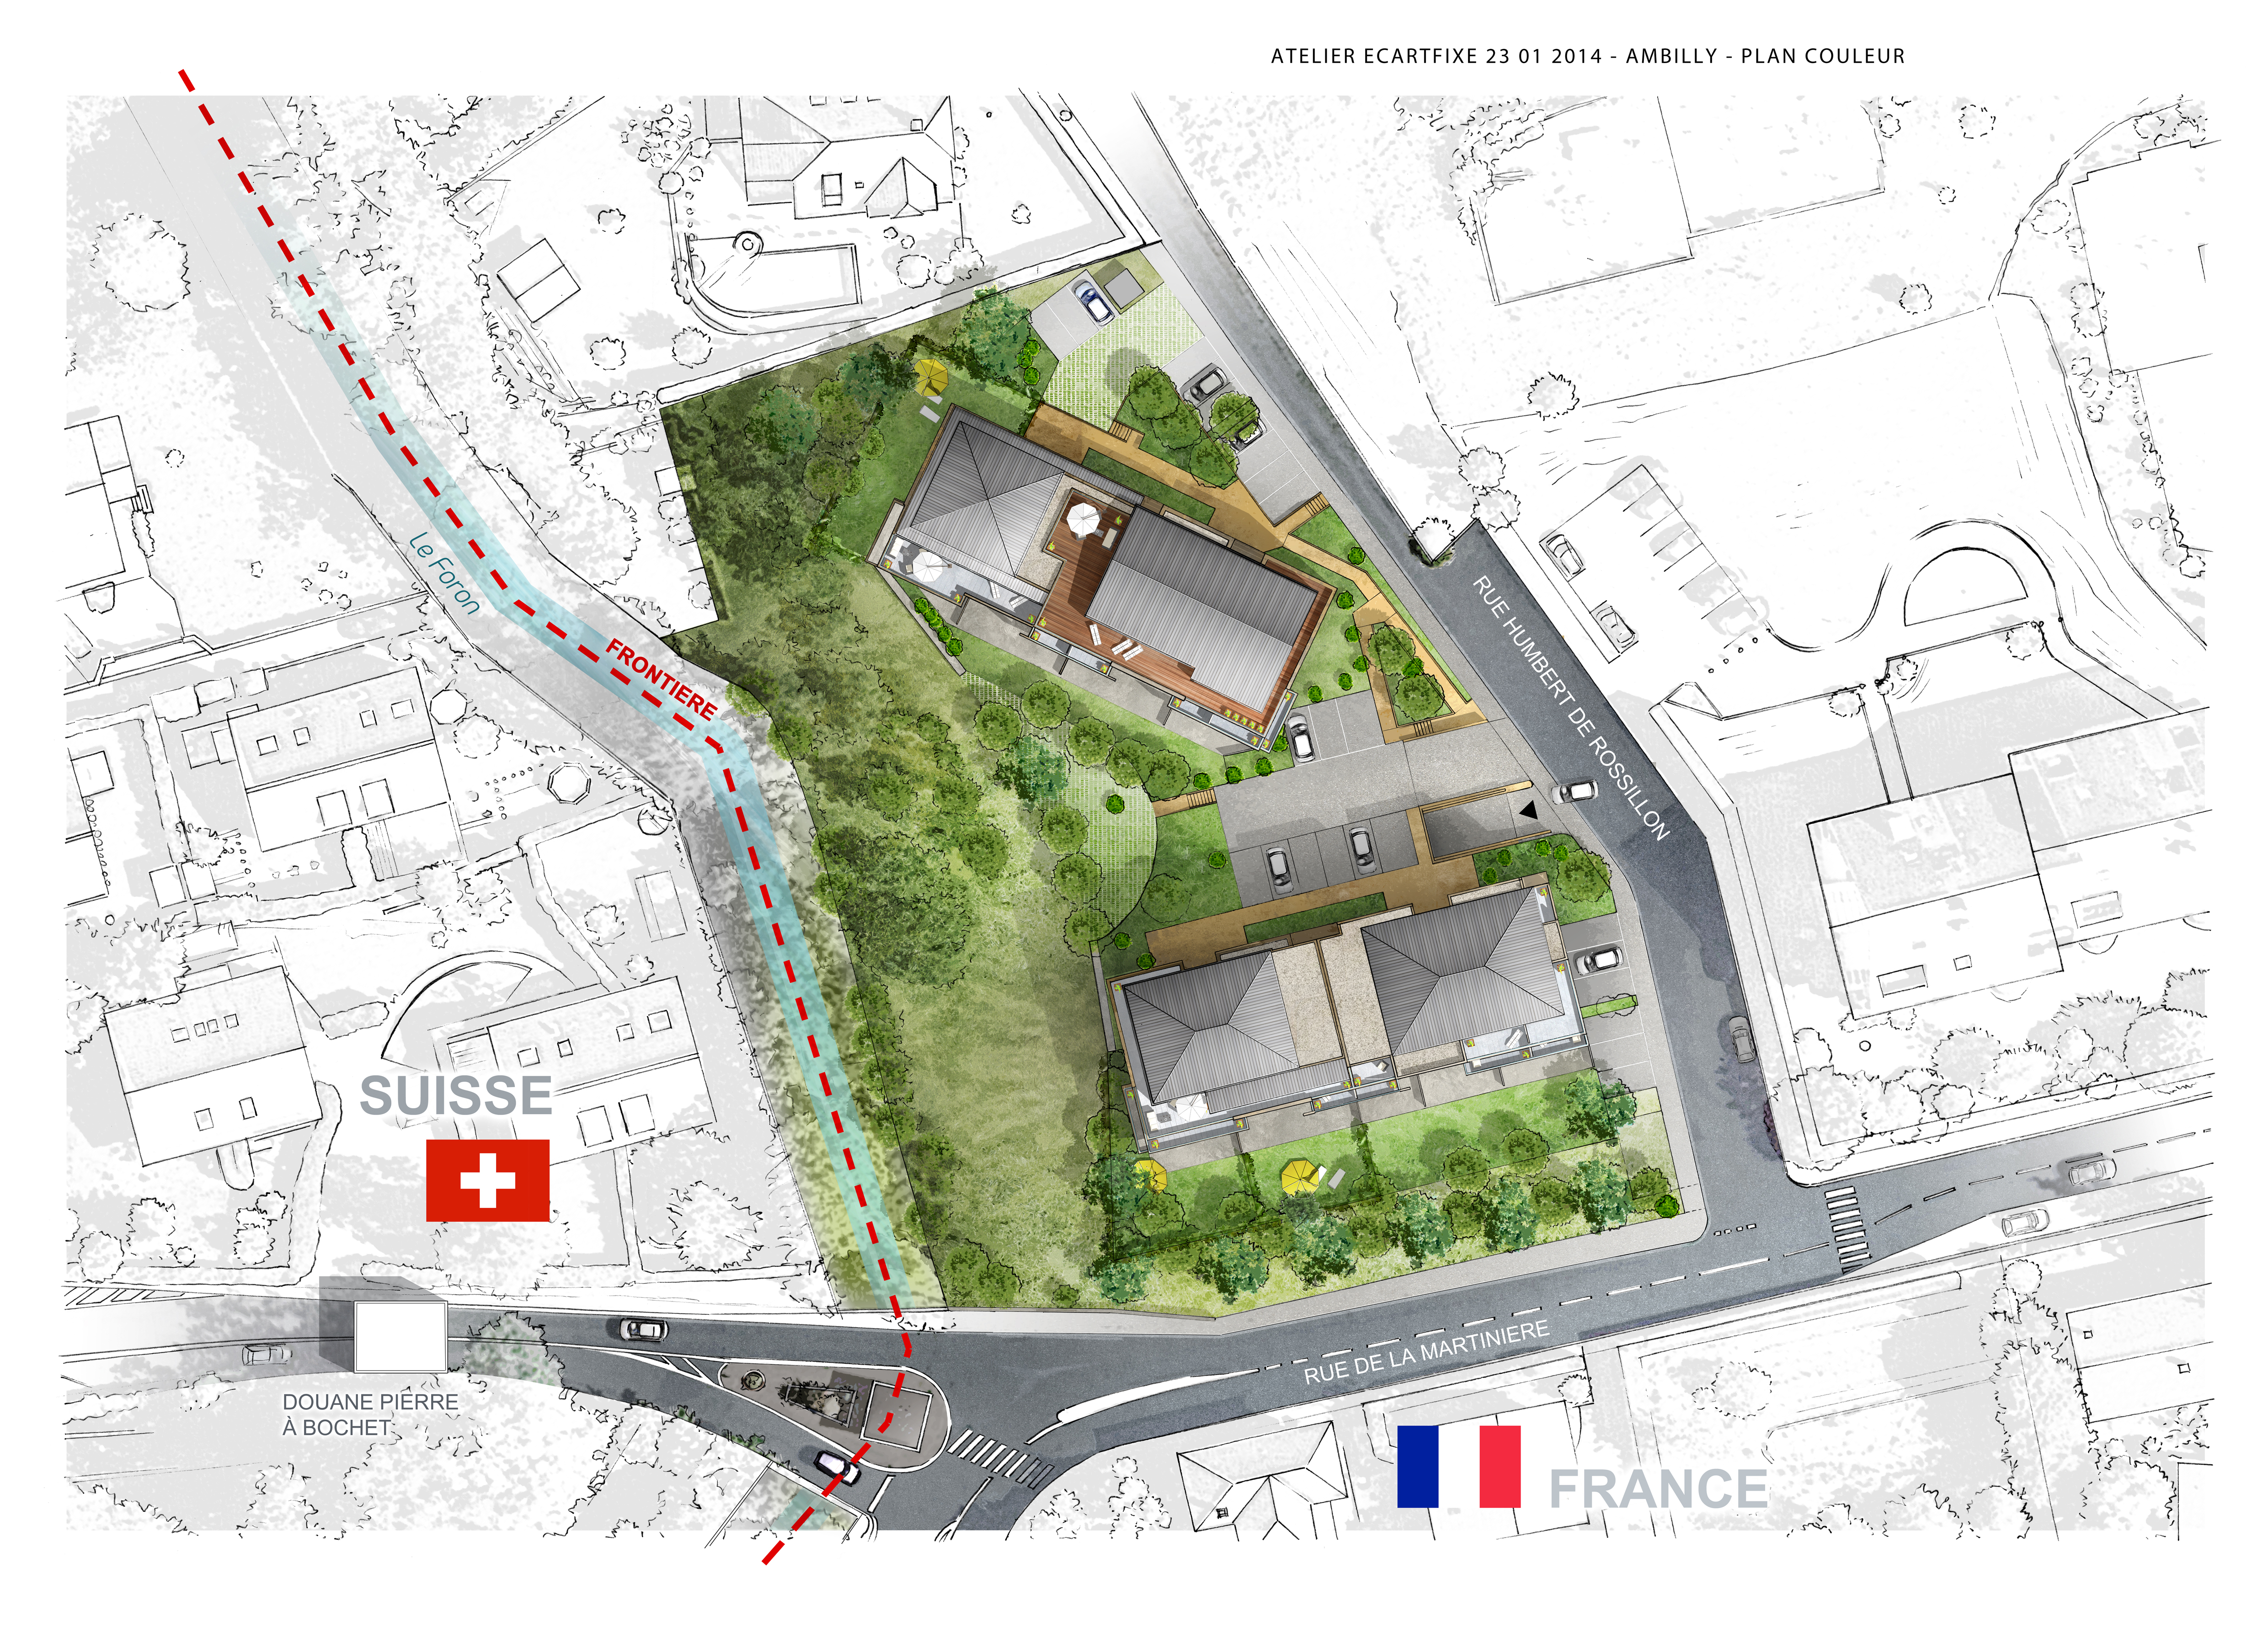 Programme immobilier ambilly le 74kara plan masse for Plan masse architecture